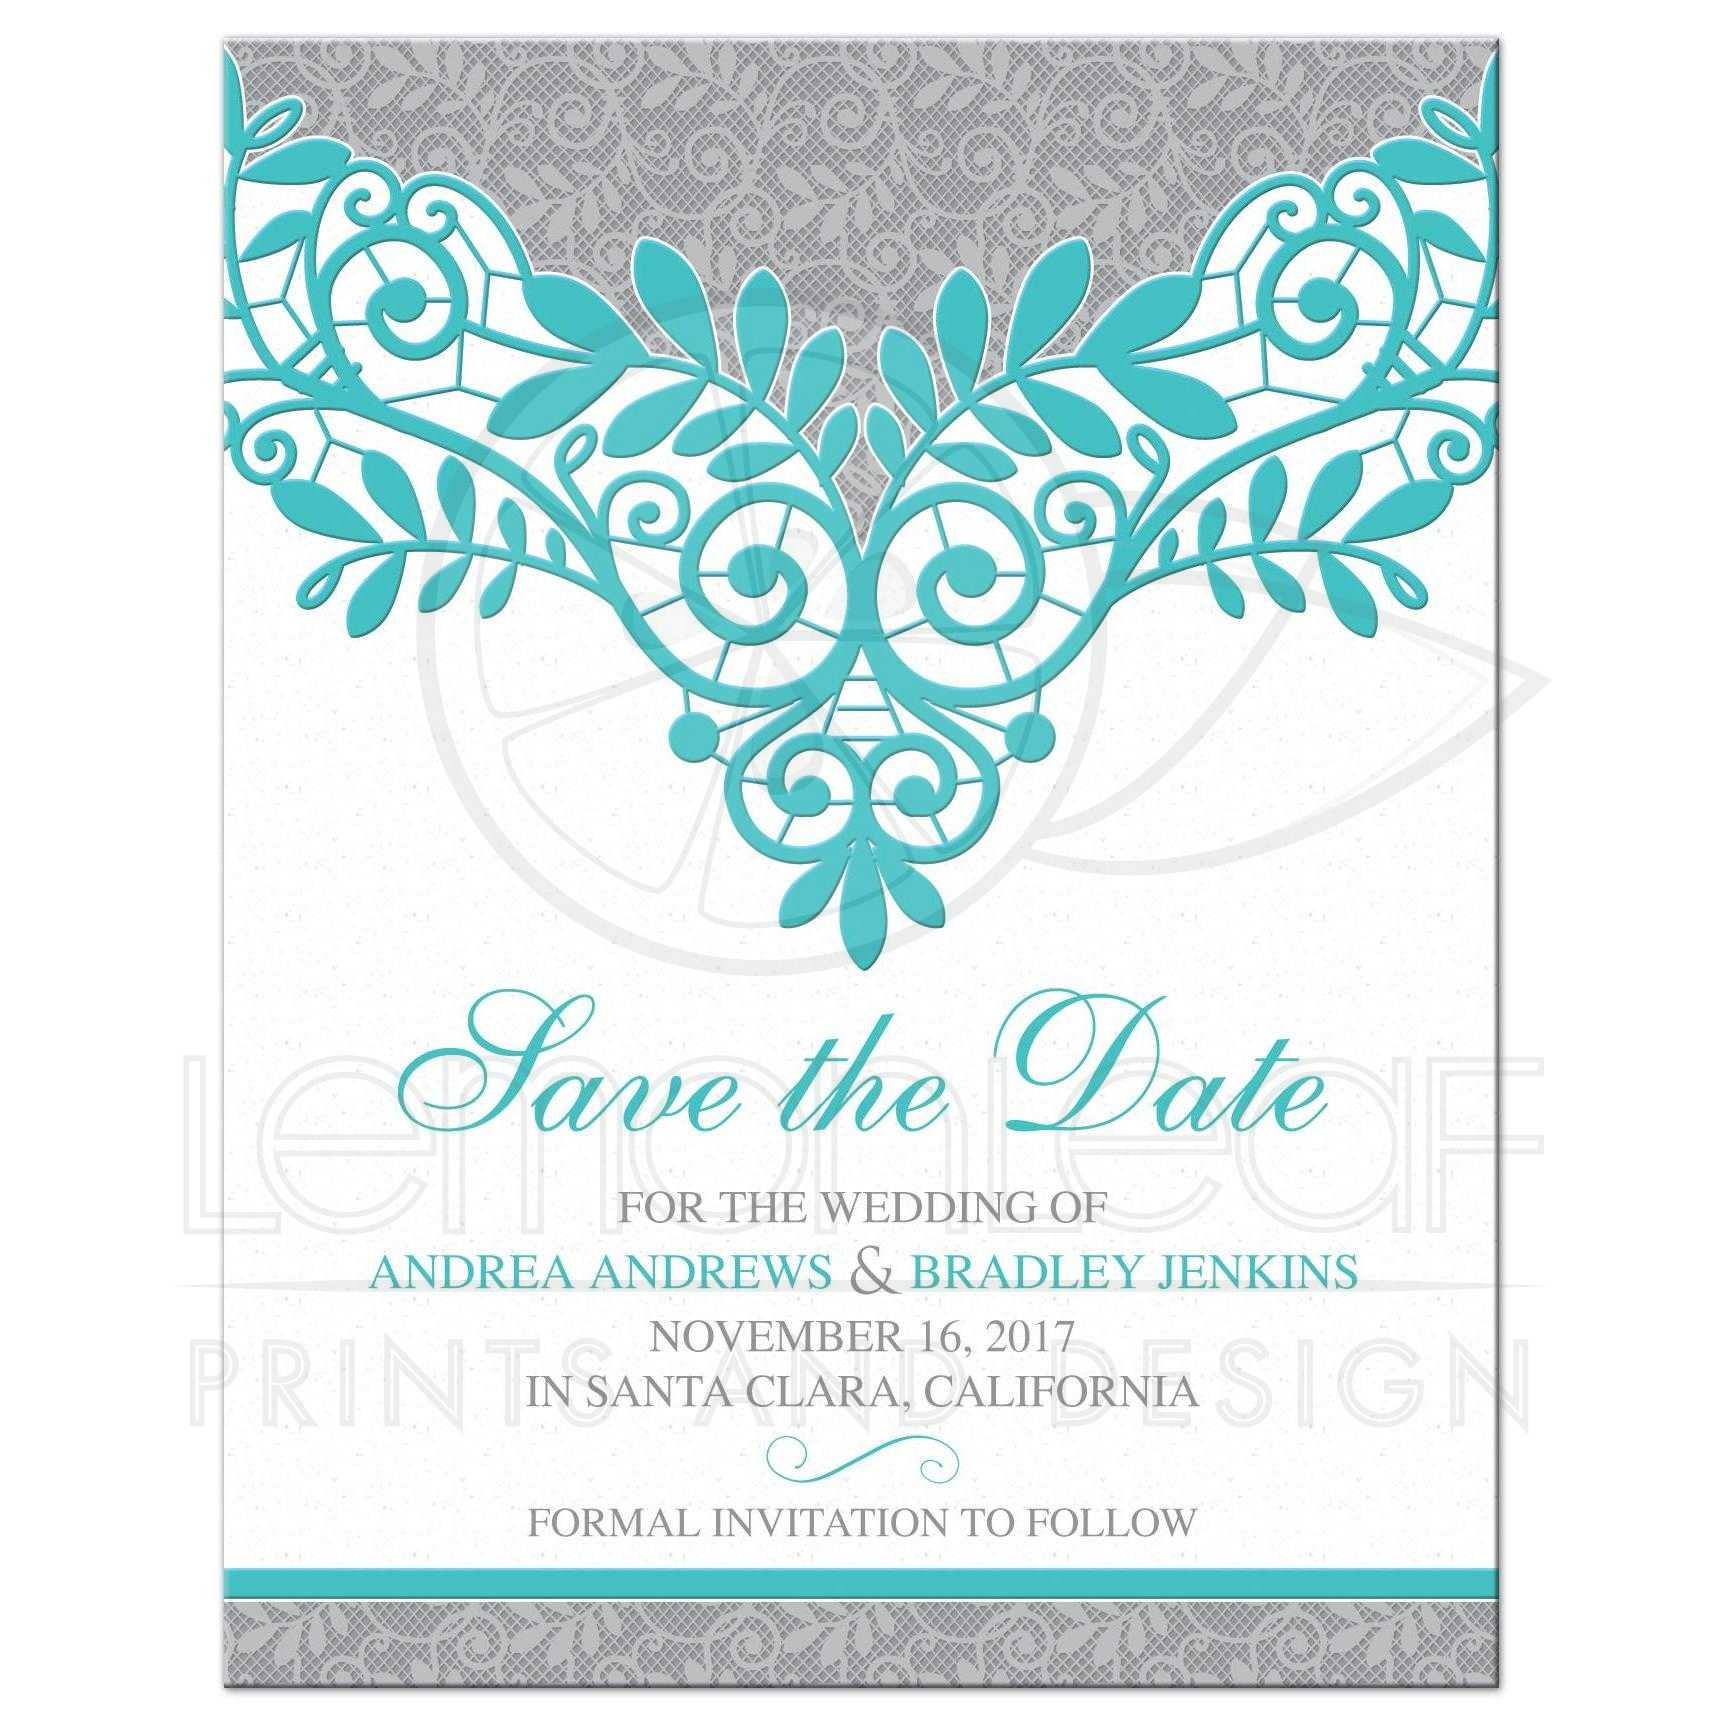 Turquoise Silver Wedding Save the Date Silver Grey and Turquoise Lace